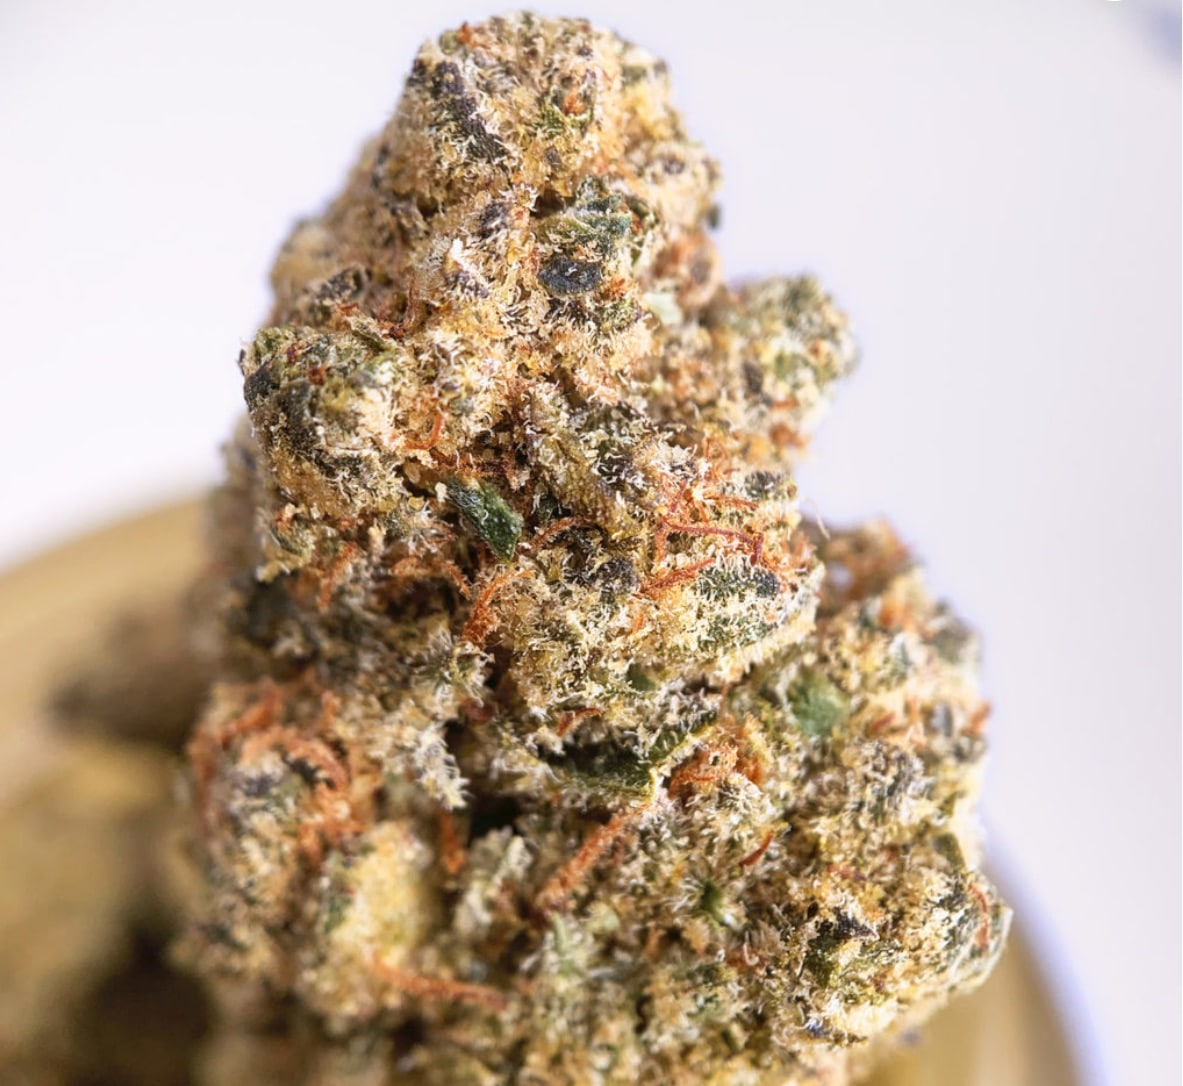 district connect dc lemon cookies weed photo